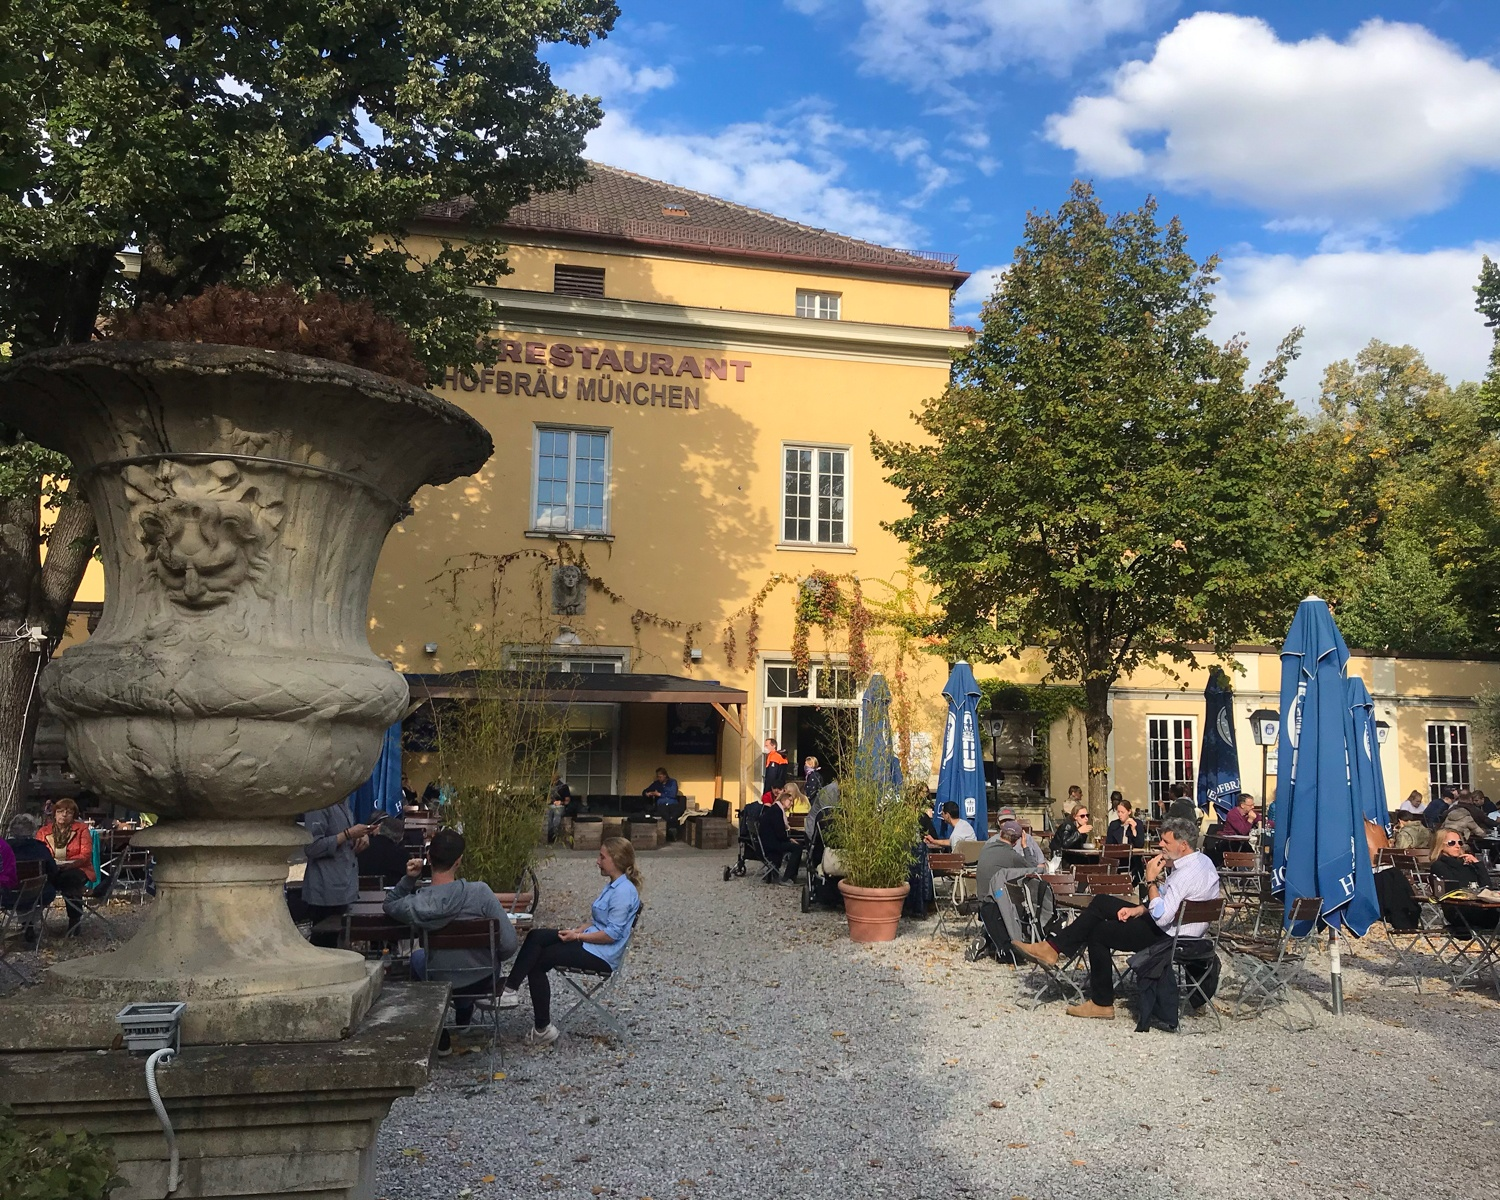 Park cafe in Munich, Germany